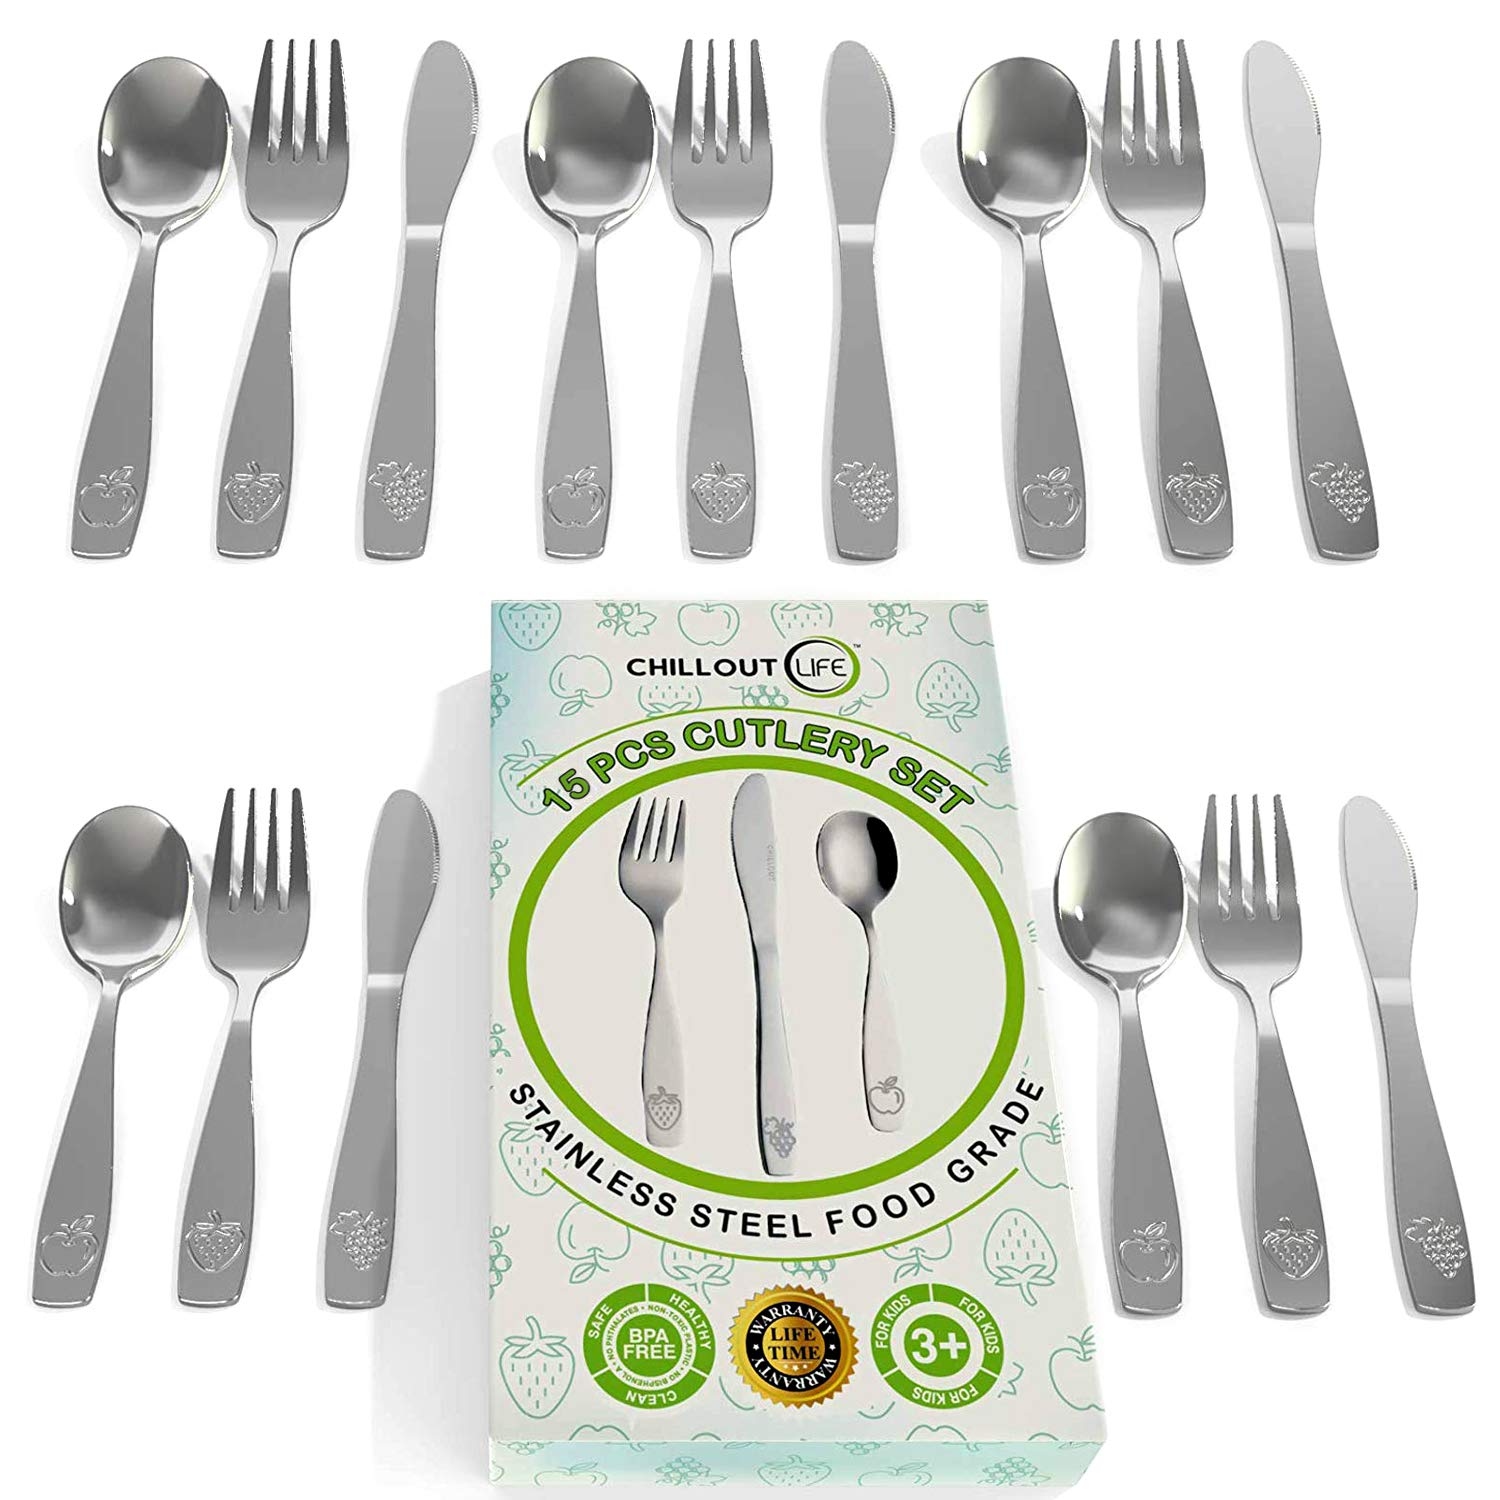 15 Piece Stainless Steel Kids Silverware Set | Child and Toddler Safe Flatware | Kids Utensil Set | Metal Kids Cutlery Set Includes 5 Small Kids Spoons, 5 Forks & 5 Knives 718MmvHPznL